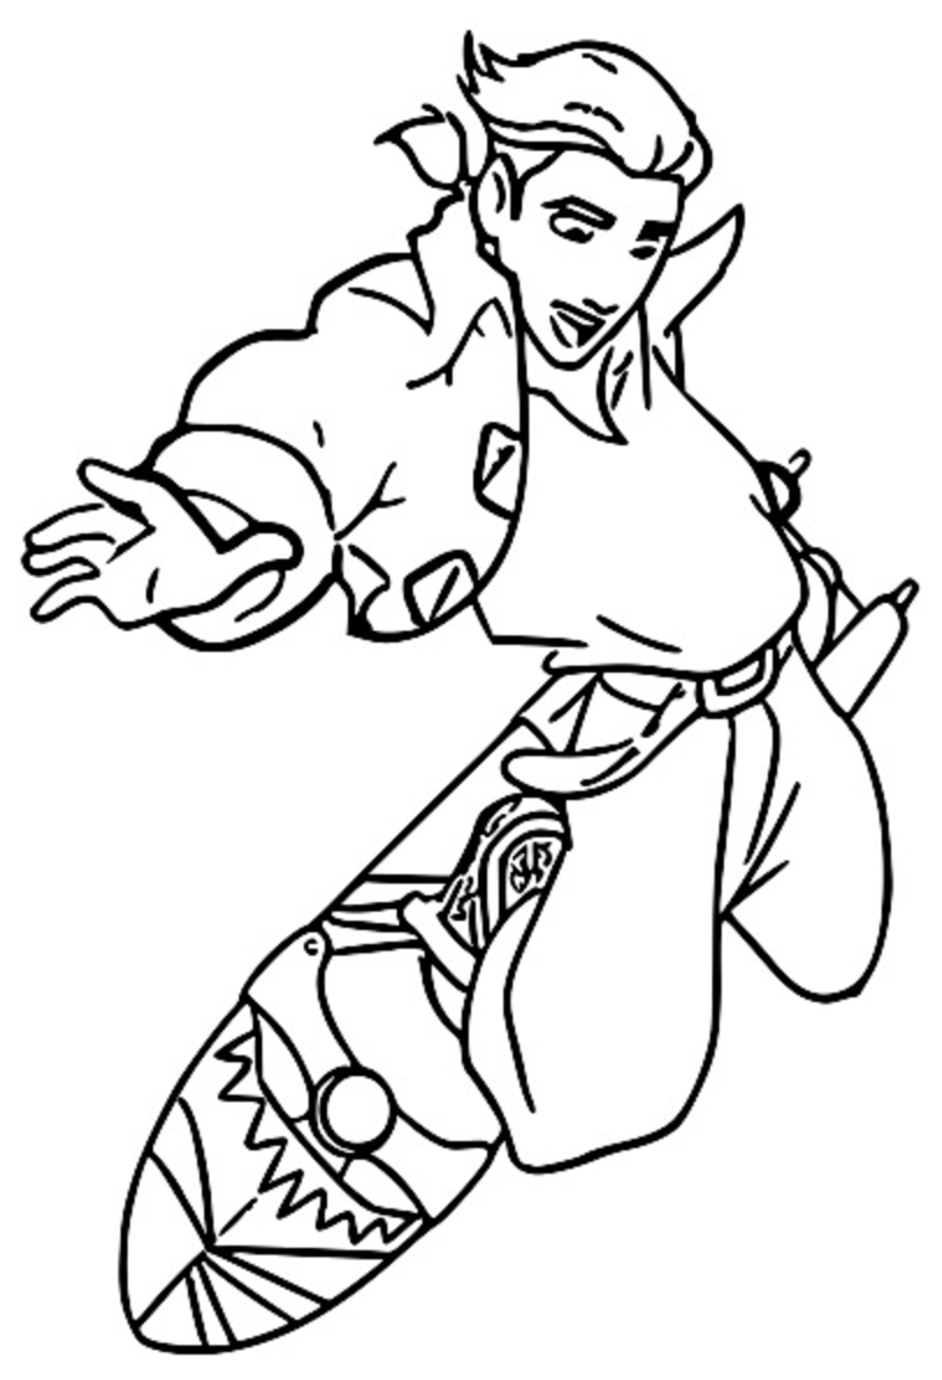 Treasure Planet tr 22 Coloring Pages_Cartoonized